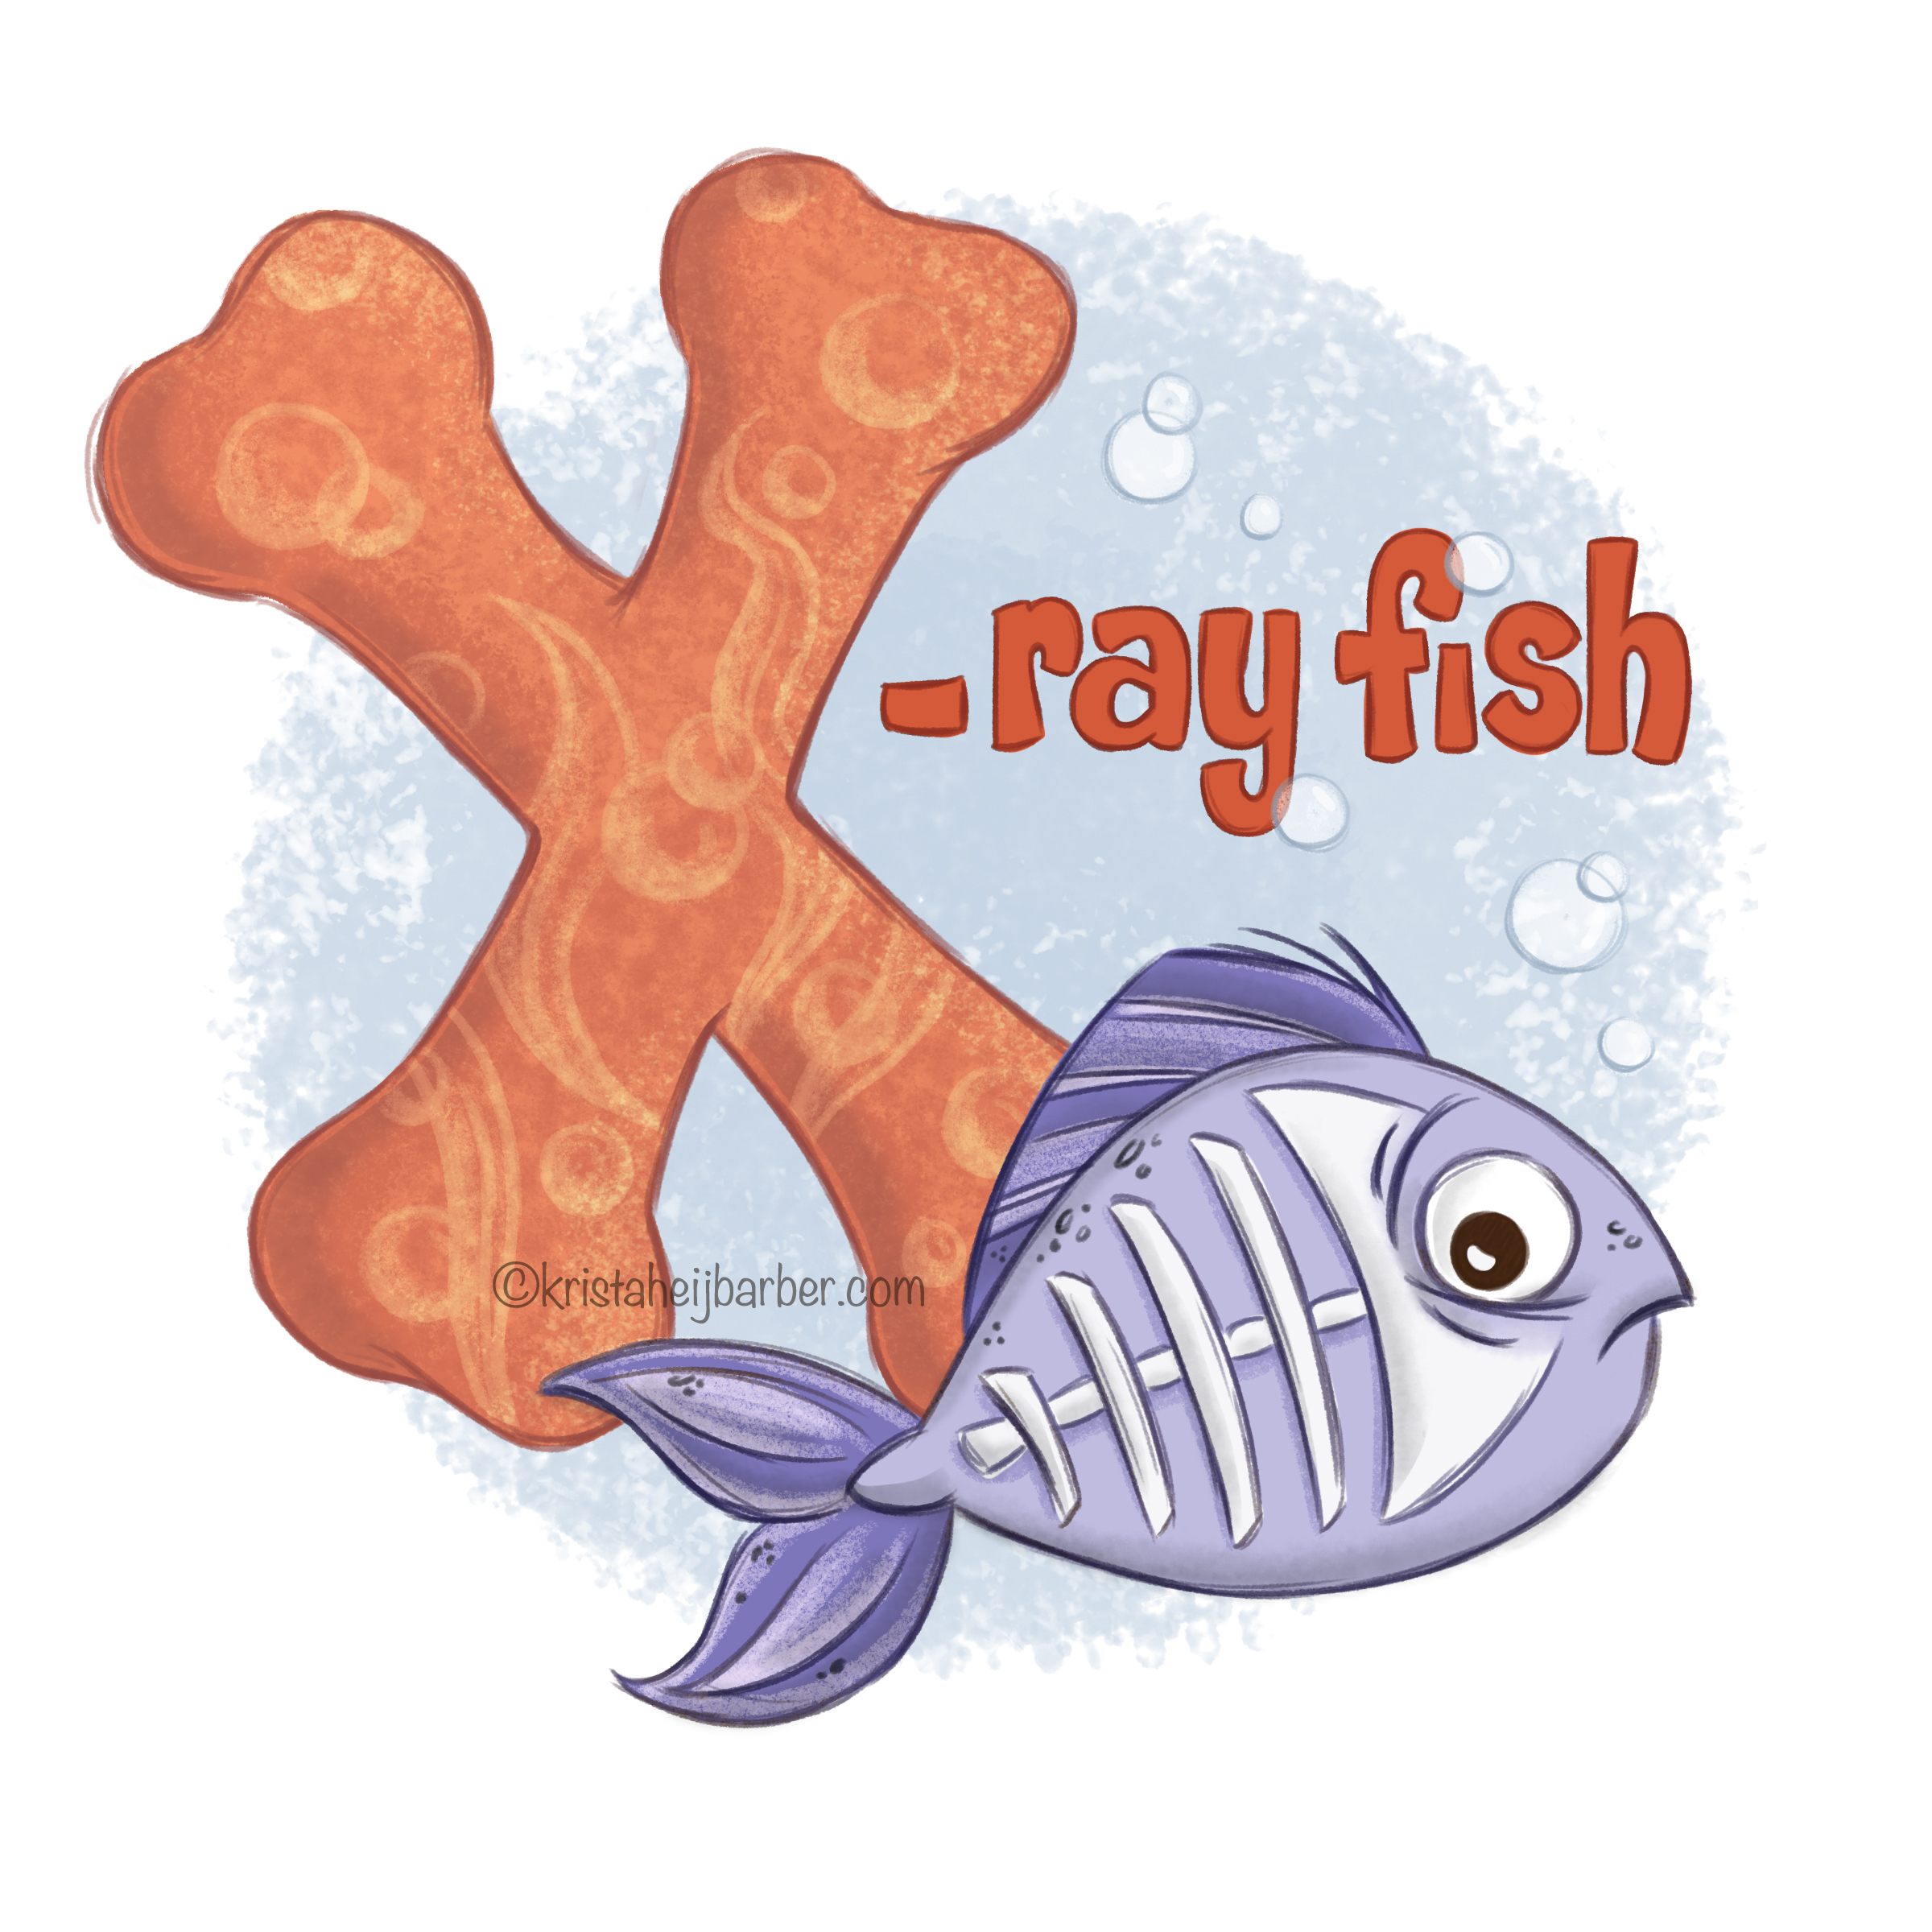 X is for xray fish-2.jpg